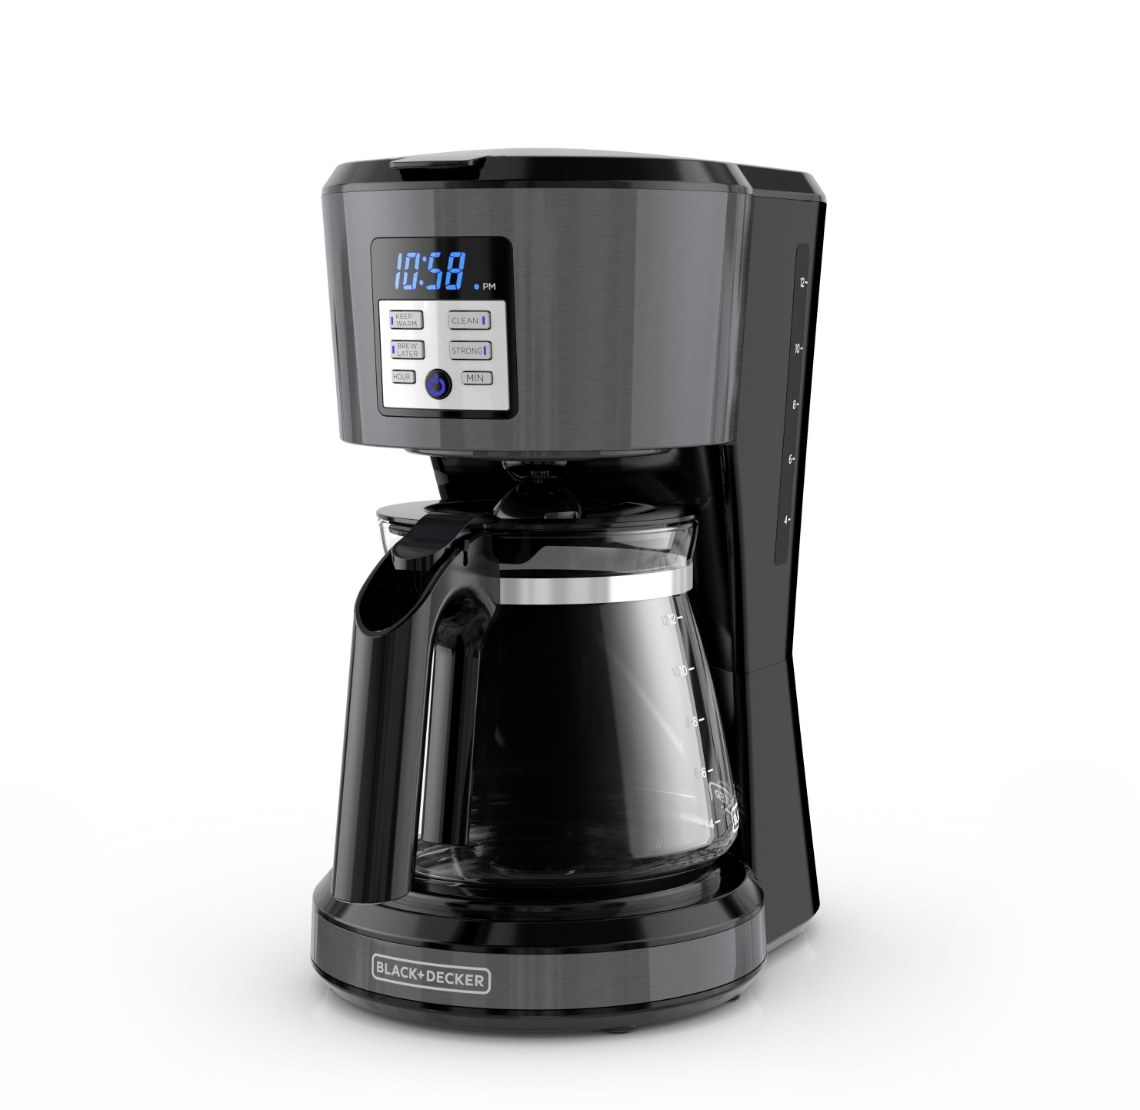 The programable coffee maker